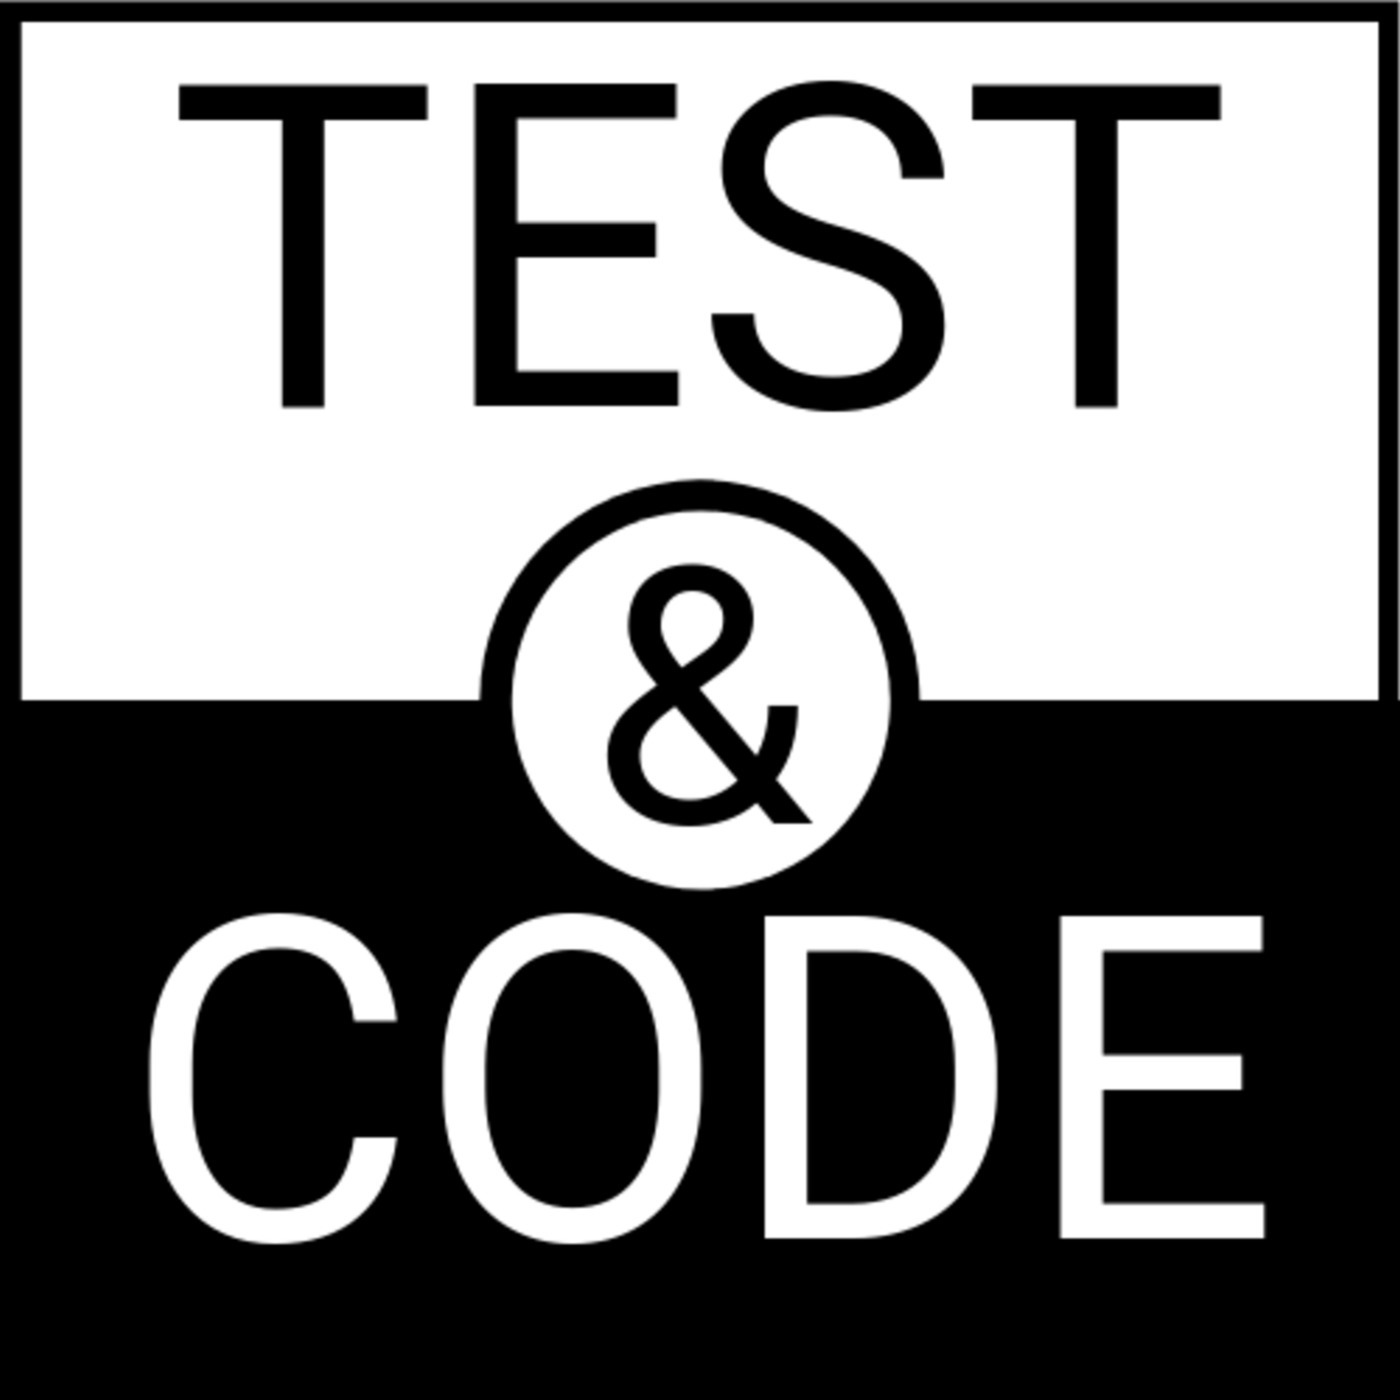 Test & Code - Python Testing & Development 82: pytest - favorite features since 3.0 - Anthony Sottile